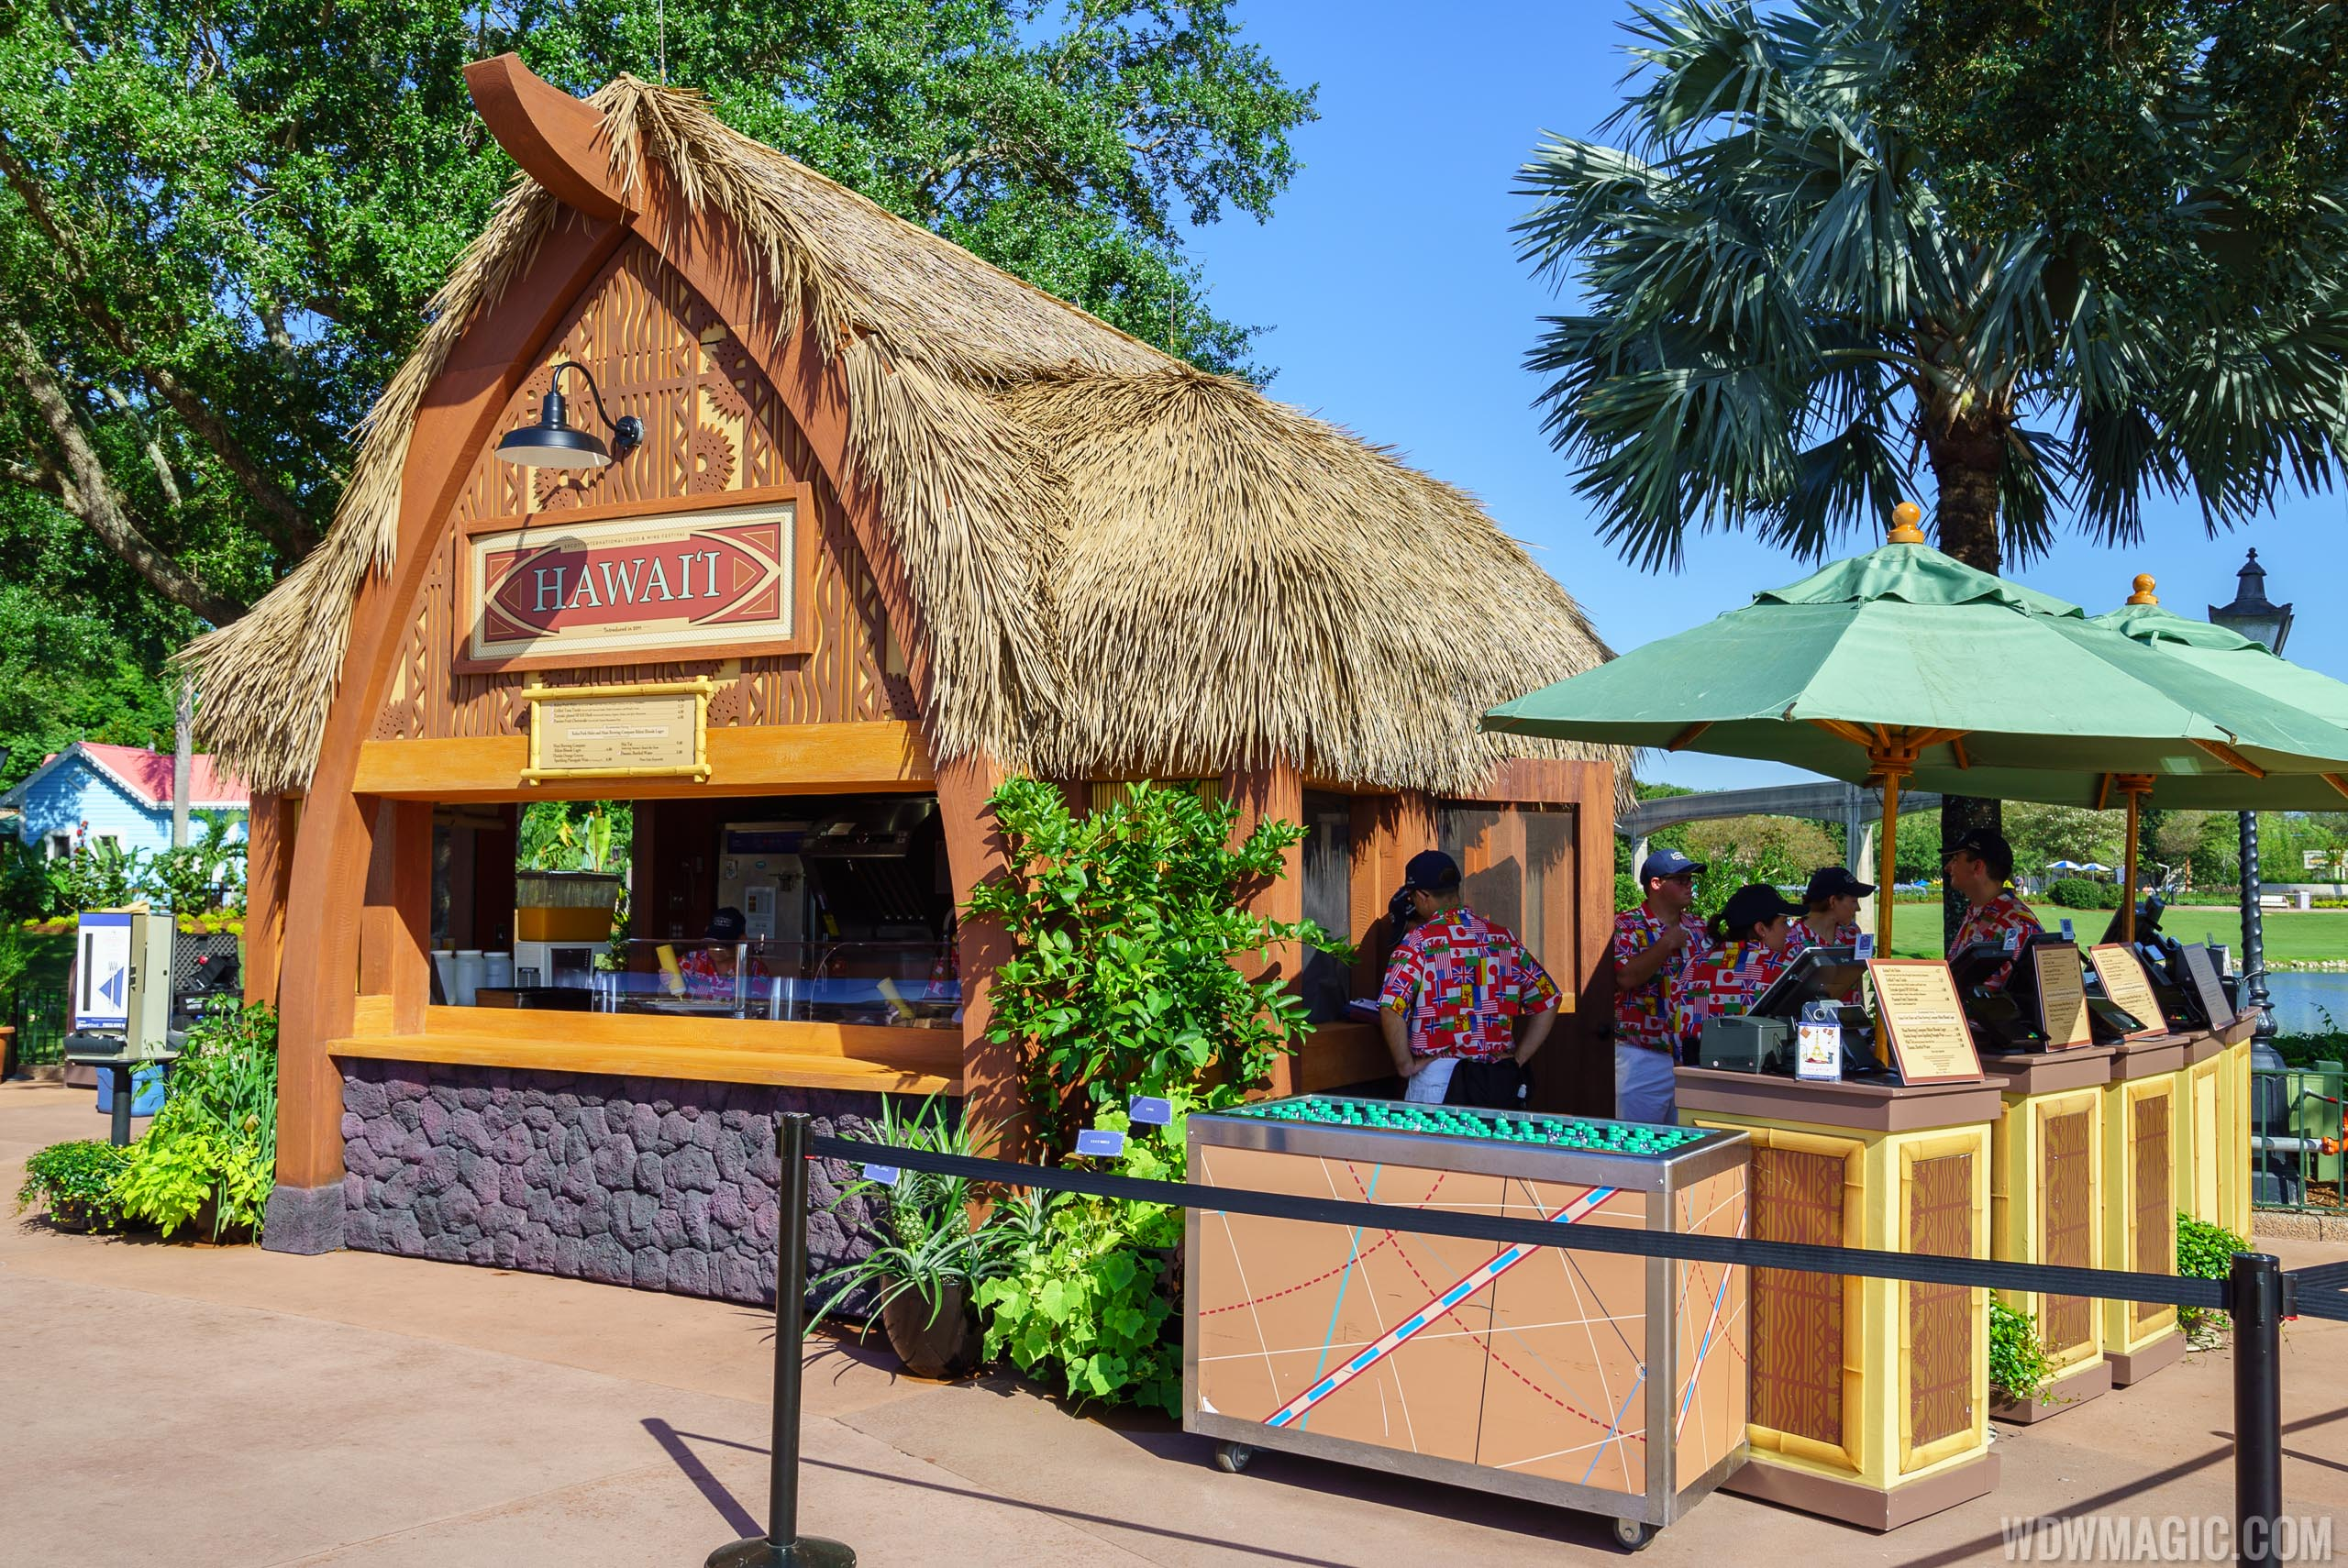 2017 Epcot Food and Wine Festival - Hawai'i marketplace kiosk